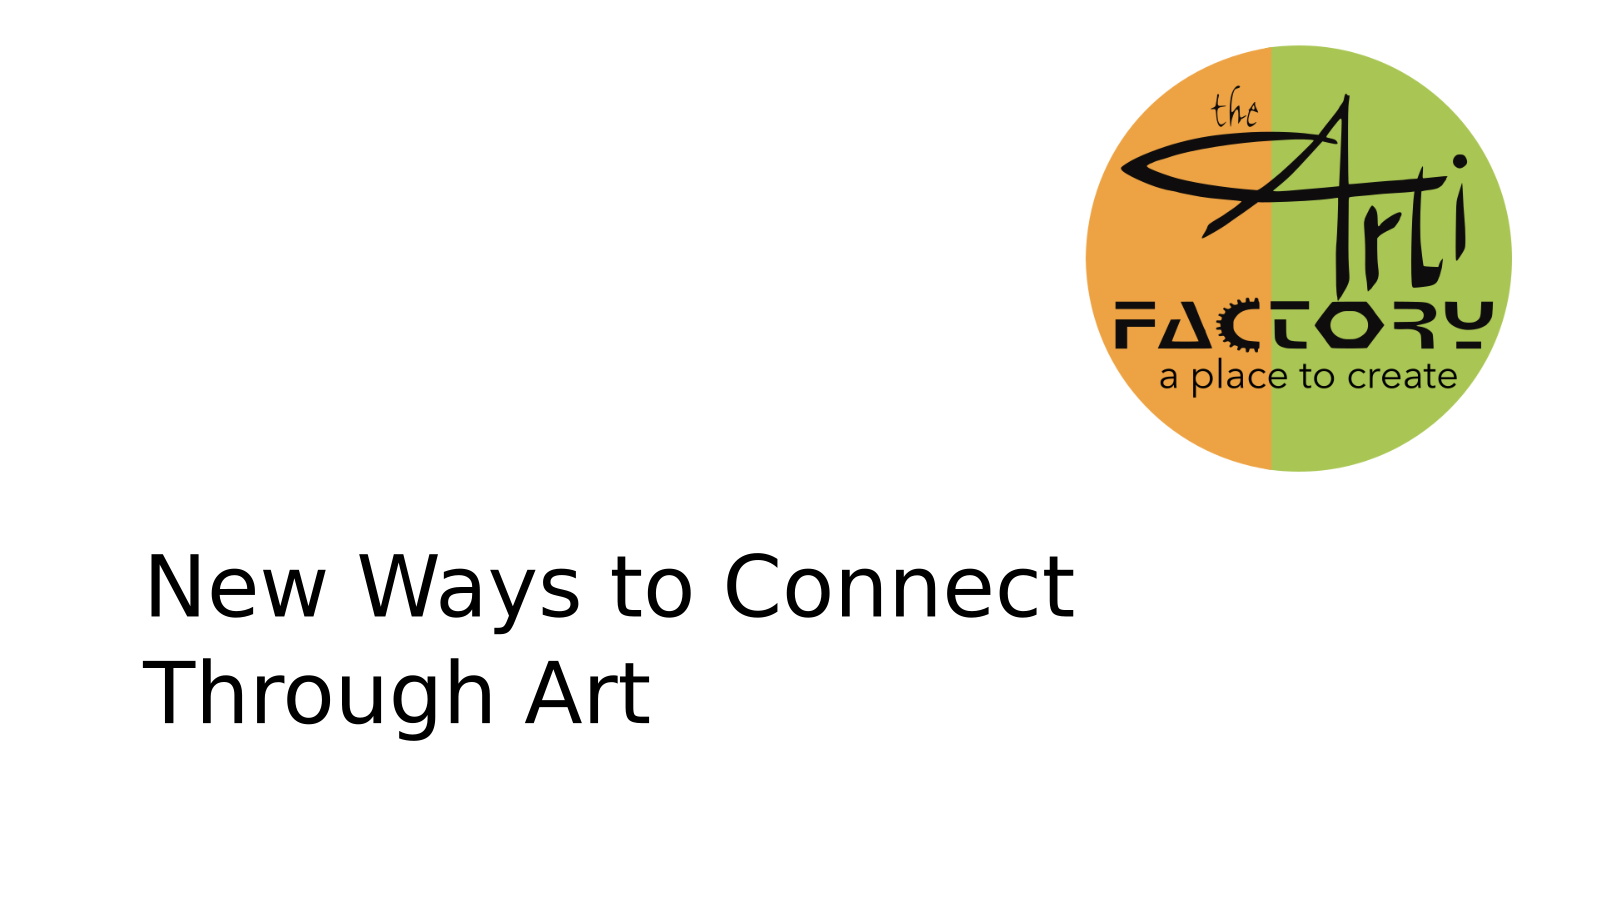 New Ways to Connect Through Art